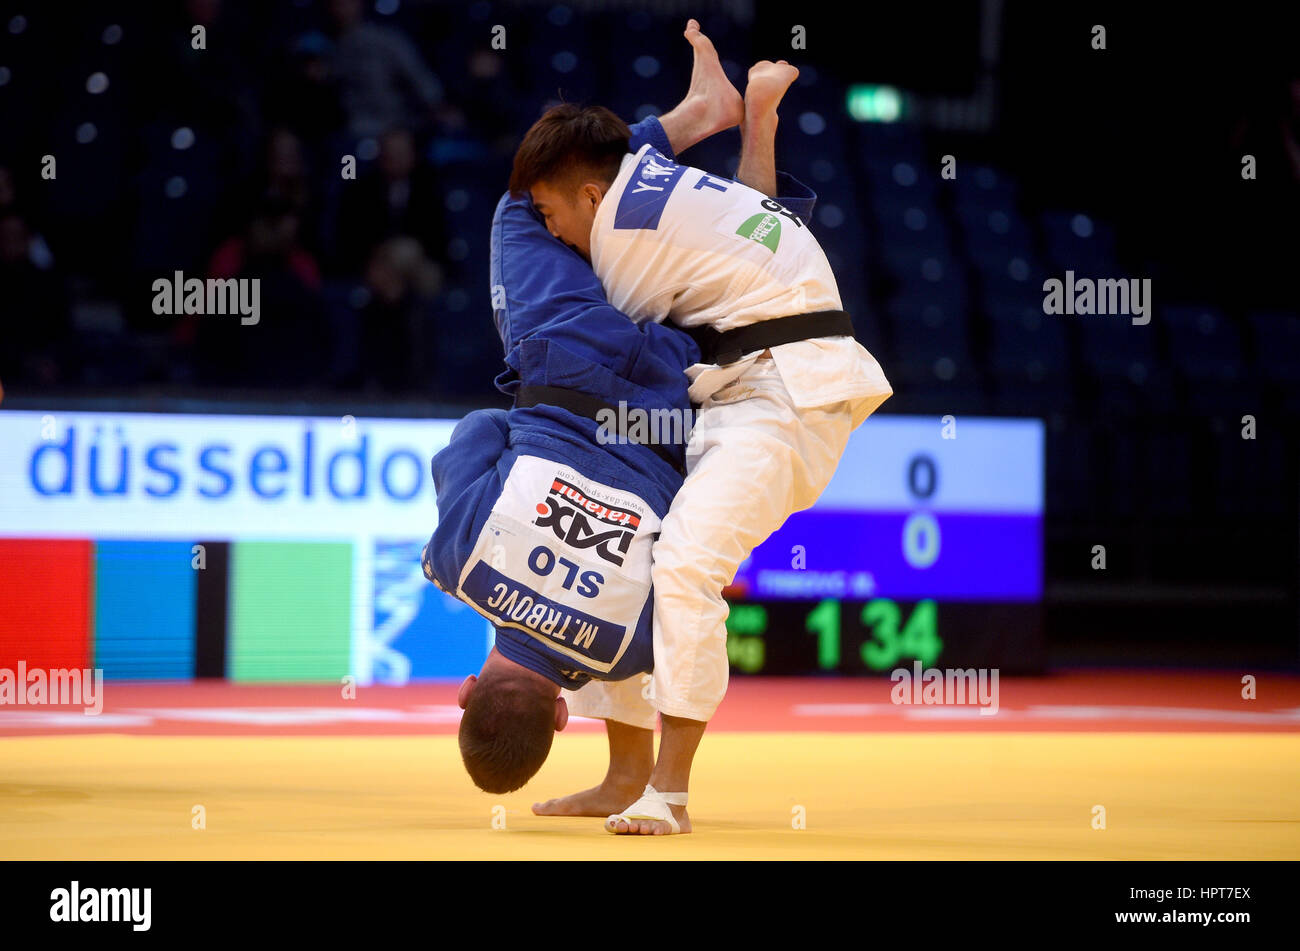 Duesseldorf, Germany. 24th Feb, 2017. Matjaz Trbovic (Slovenia - white) and Yung Wei Yang (Taipeh) in action during - Stock Image